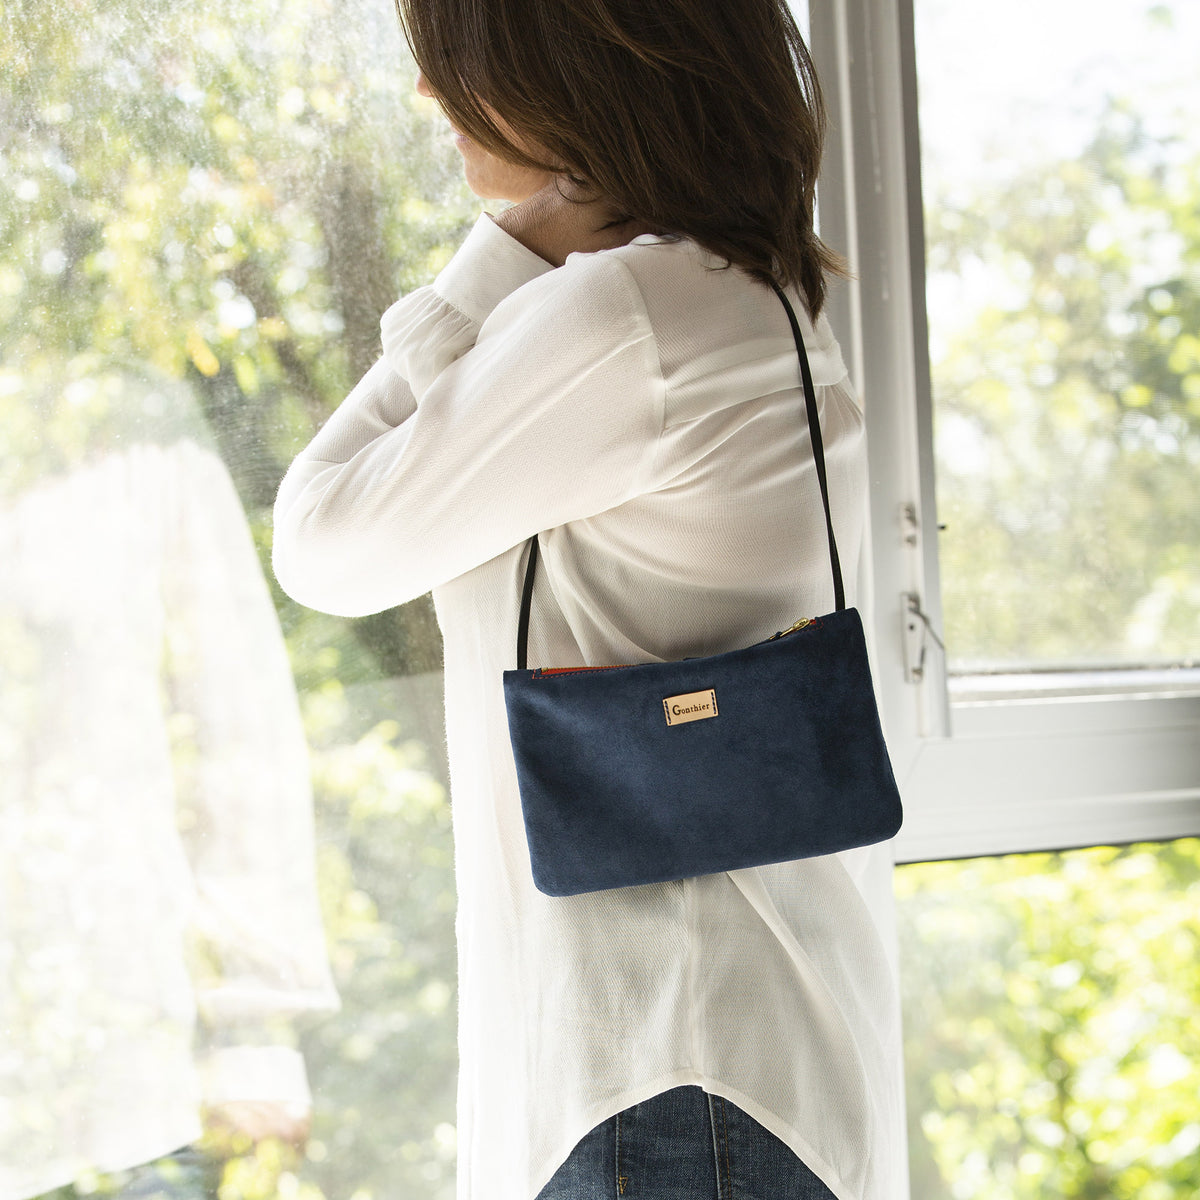 Model Wearing a Blue Handmade Small Shoulder Bag in Suede Calfskin